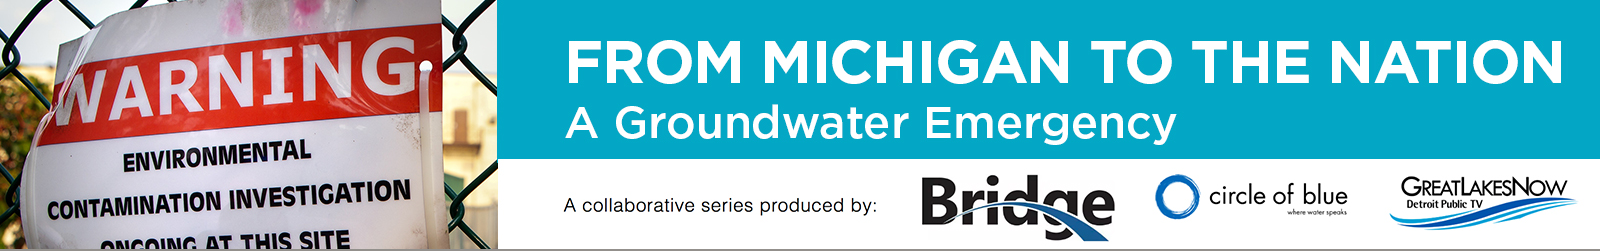 From Michigan to the Nation: A Groundwater Emergency